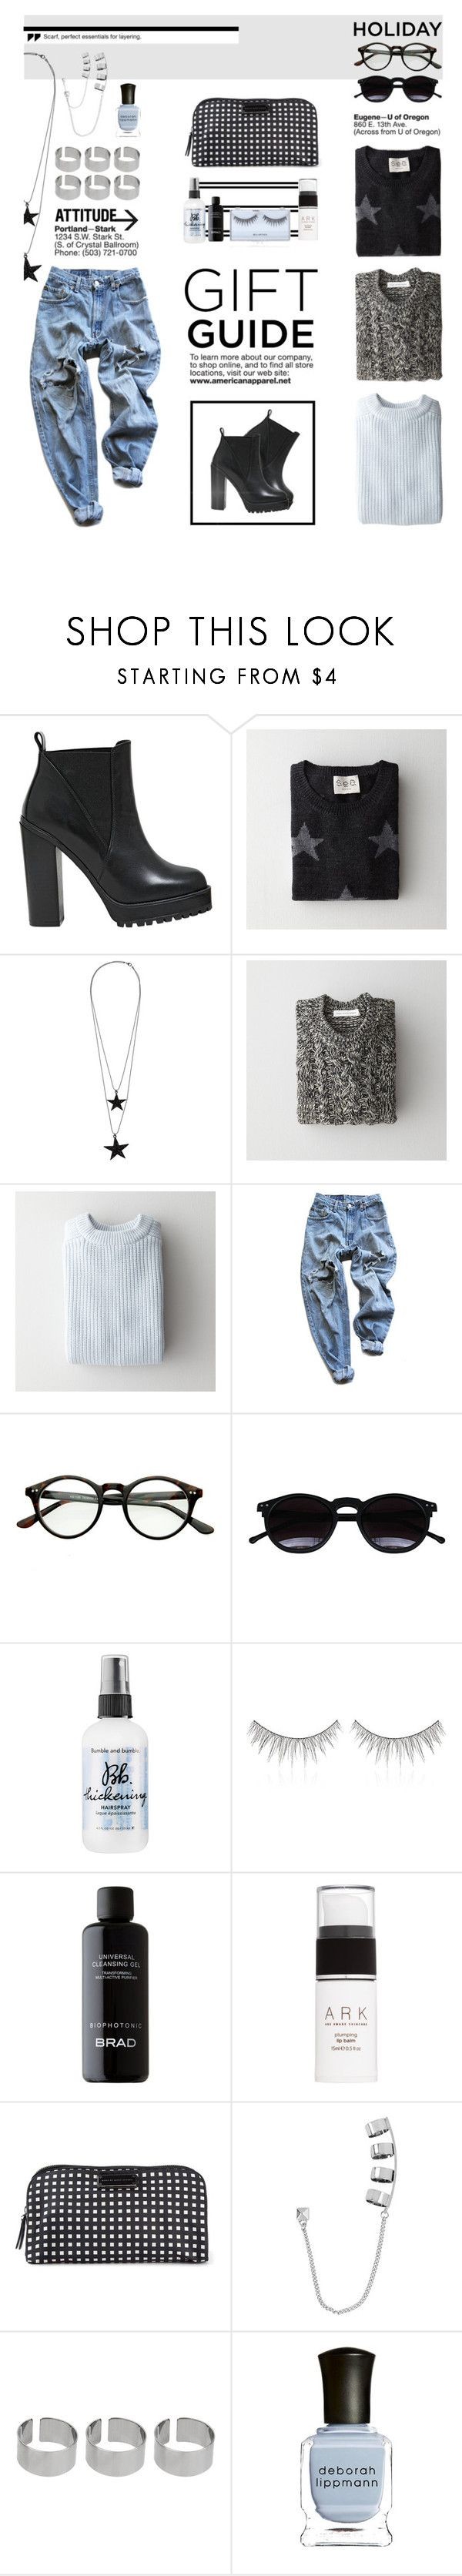 """""""Gift Guide"""" by allva ❤ liked on Polyvore featuring KG Kurt Geiger, Sea, New York, Pieces, Étoile Isabel Marant, Le Mont St. Michel, Levi's, Chicnova Fashion, Bumble and bumble, shu uemura and Ark"""